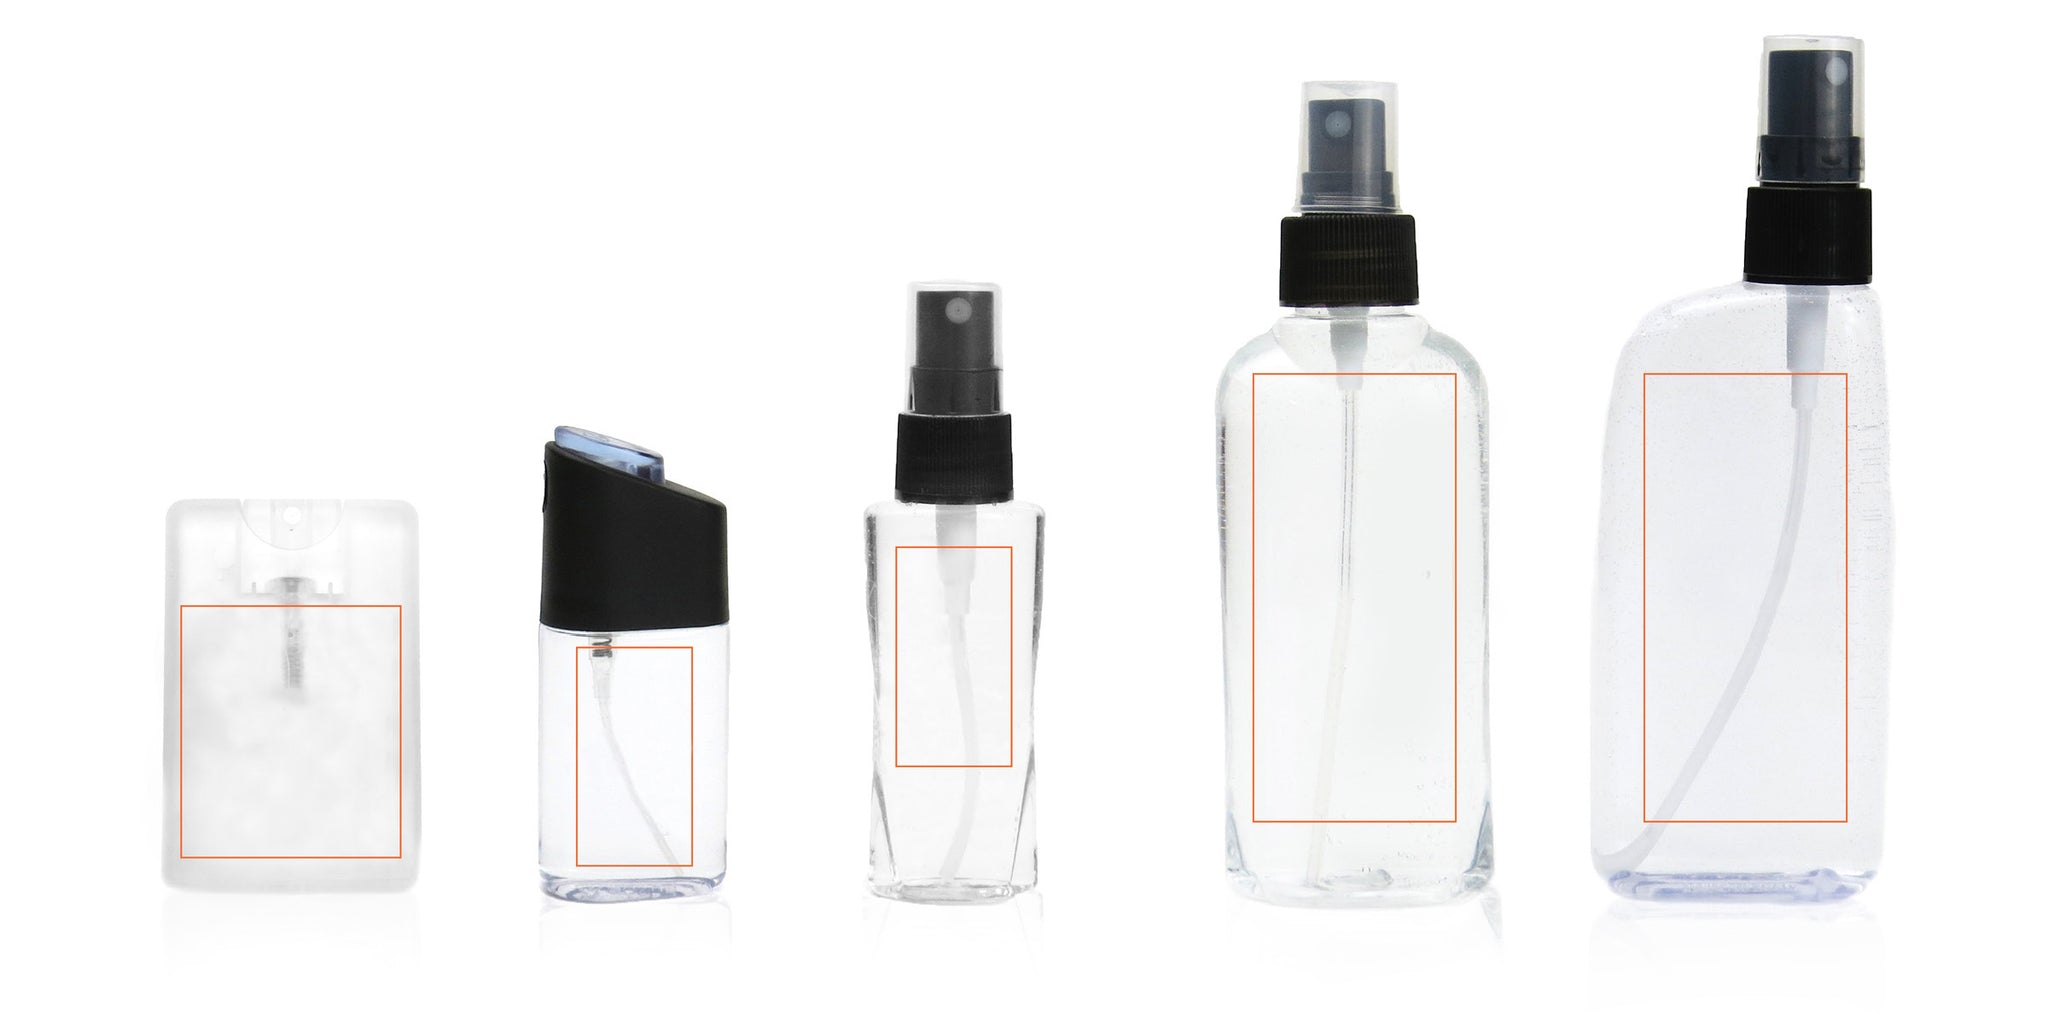 ronor-solution-bottles-personalization